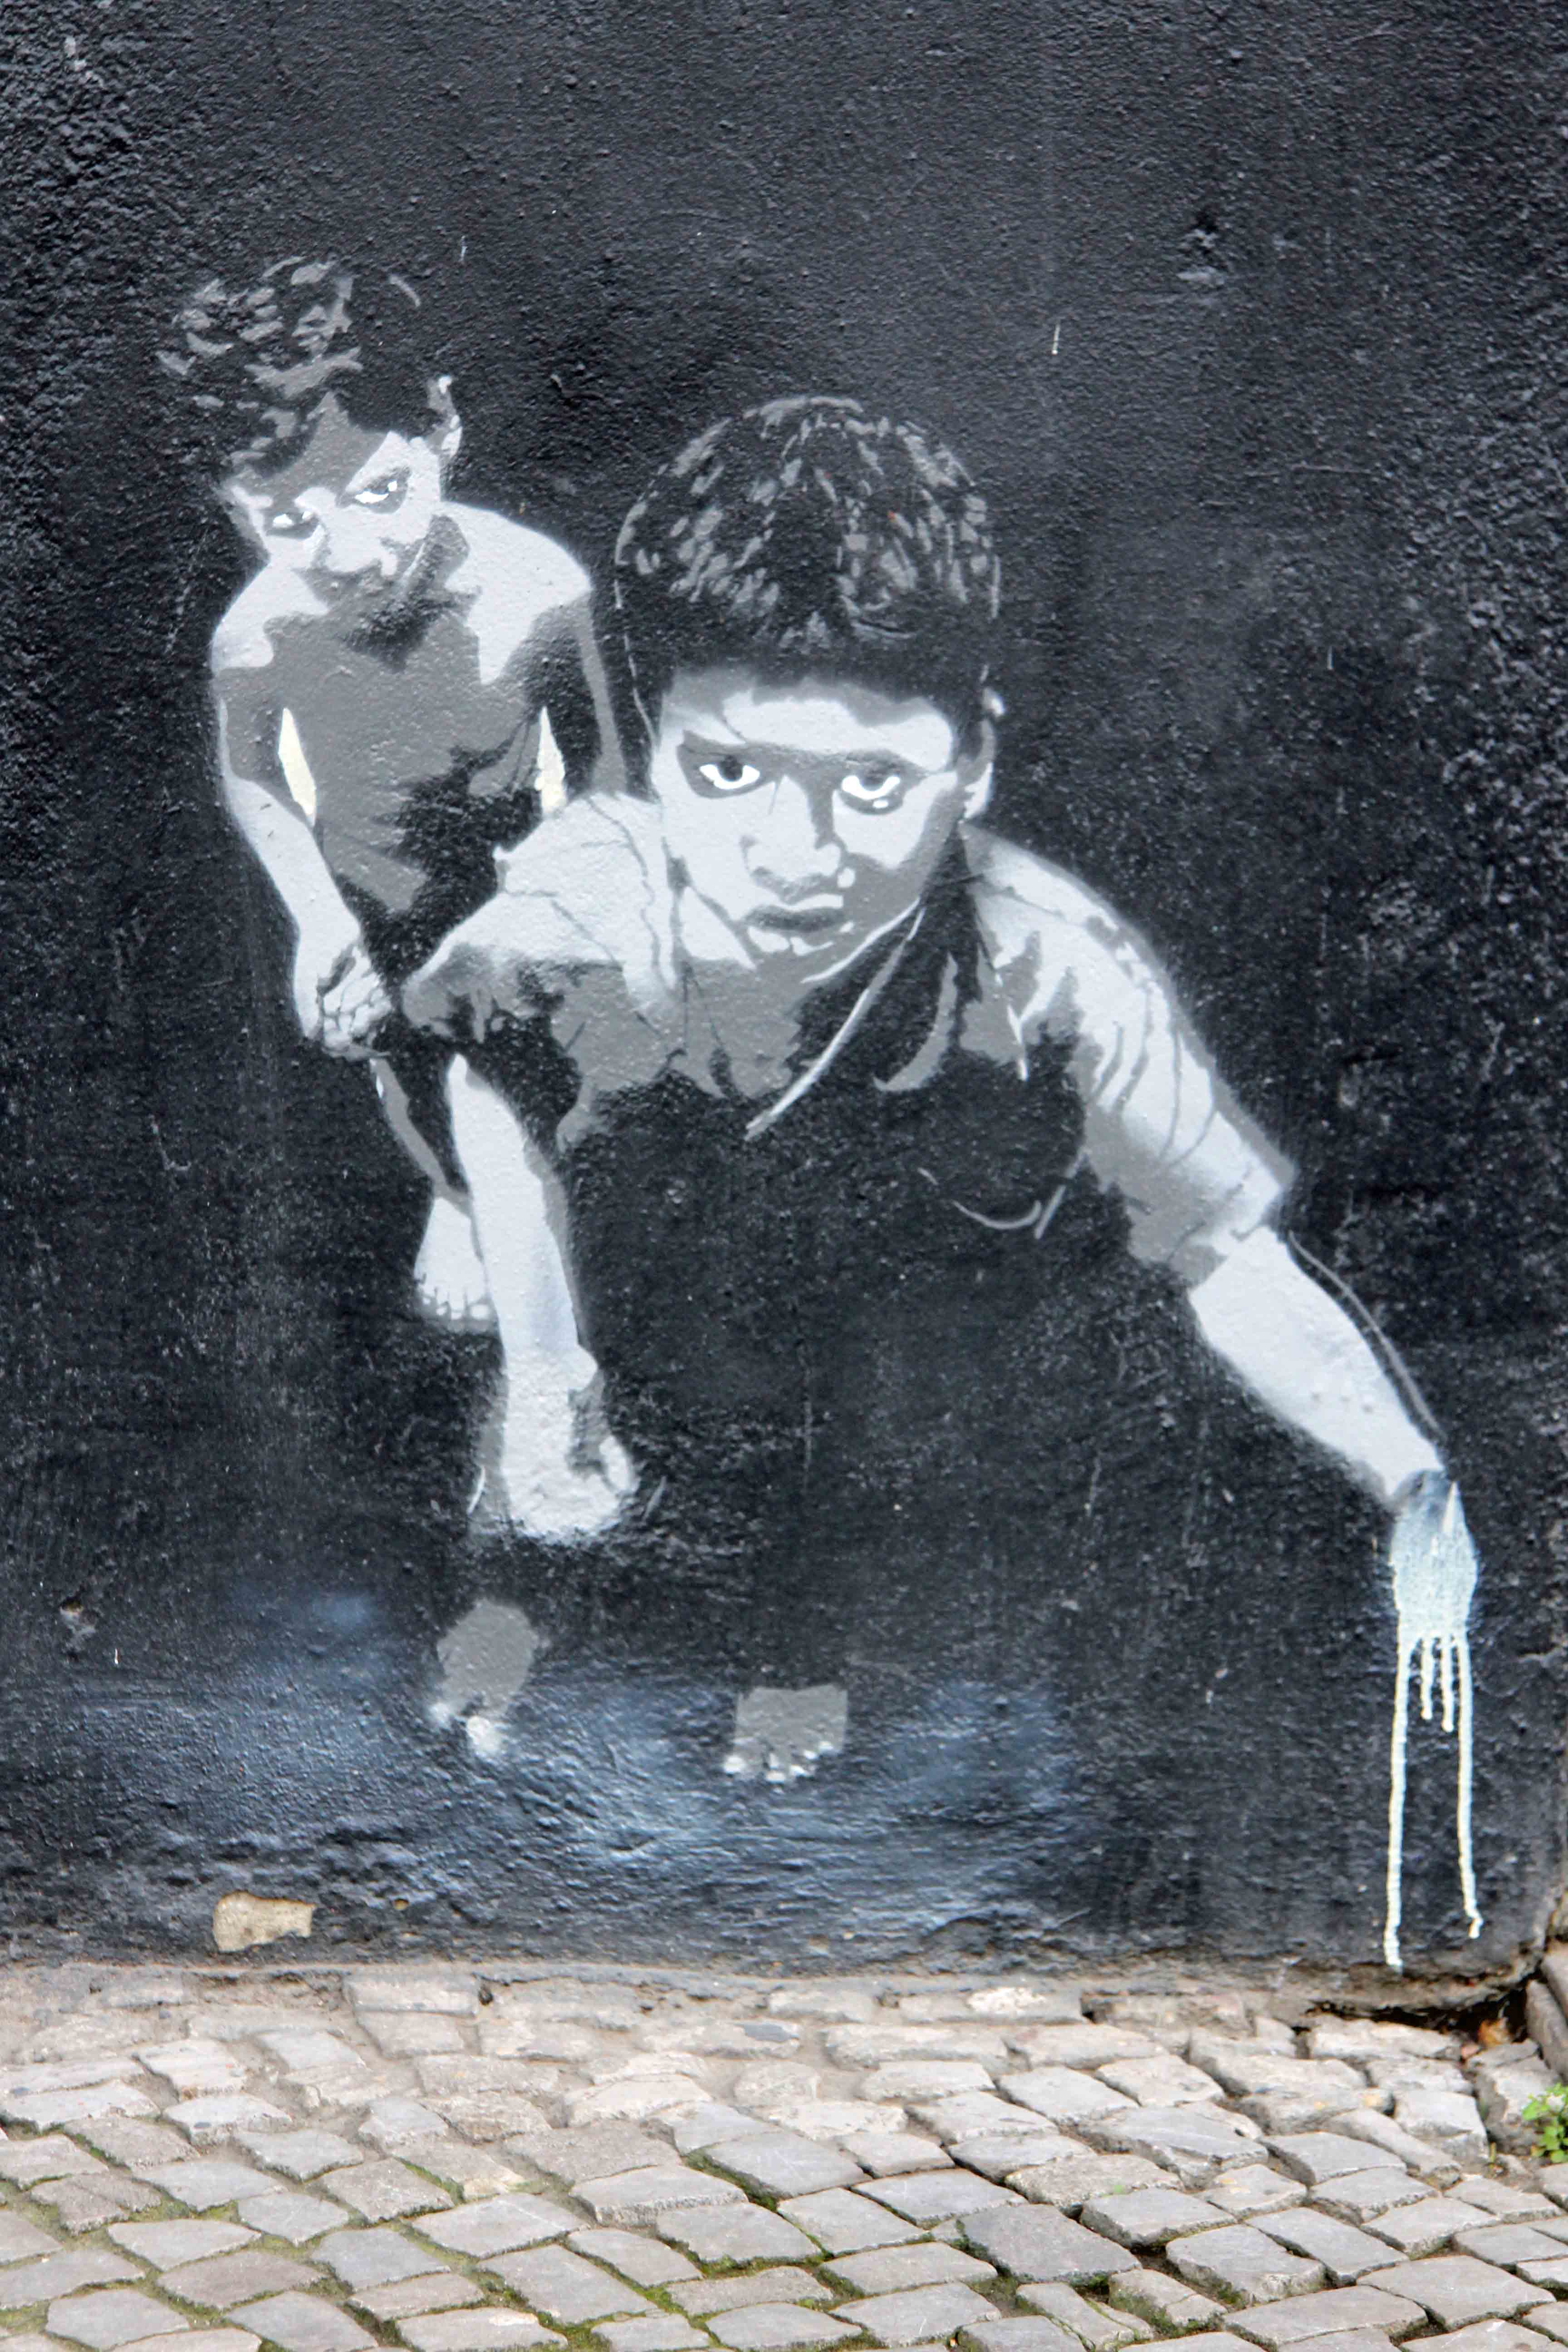 Street Kids - Street Art by Unknown Artist in Berlin